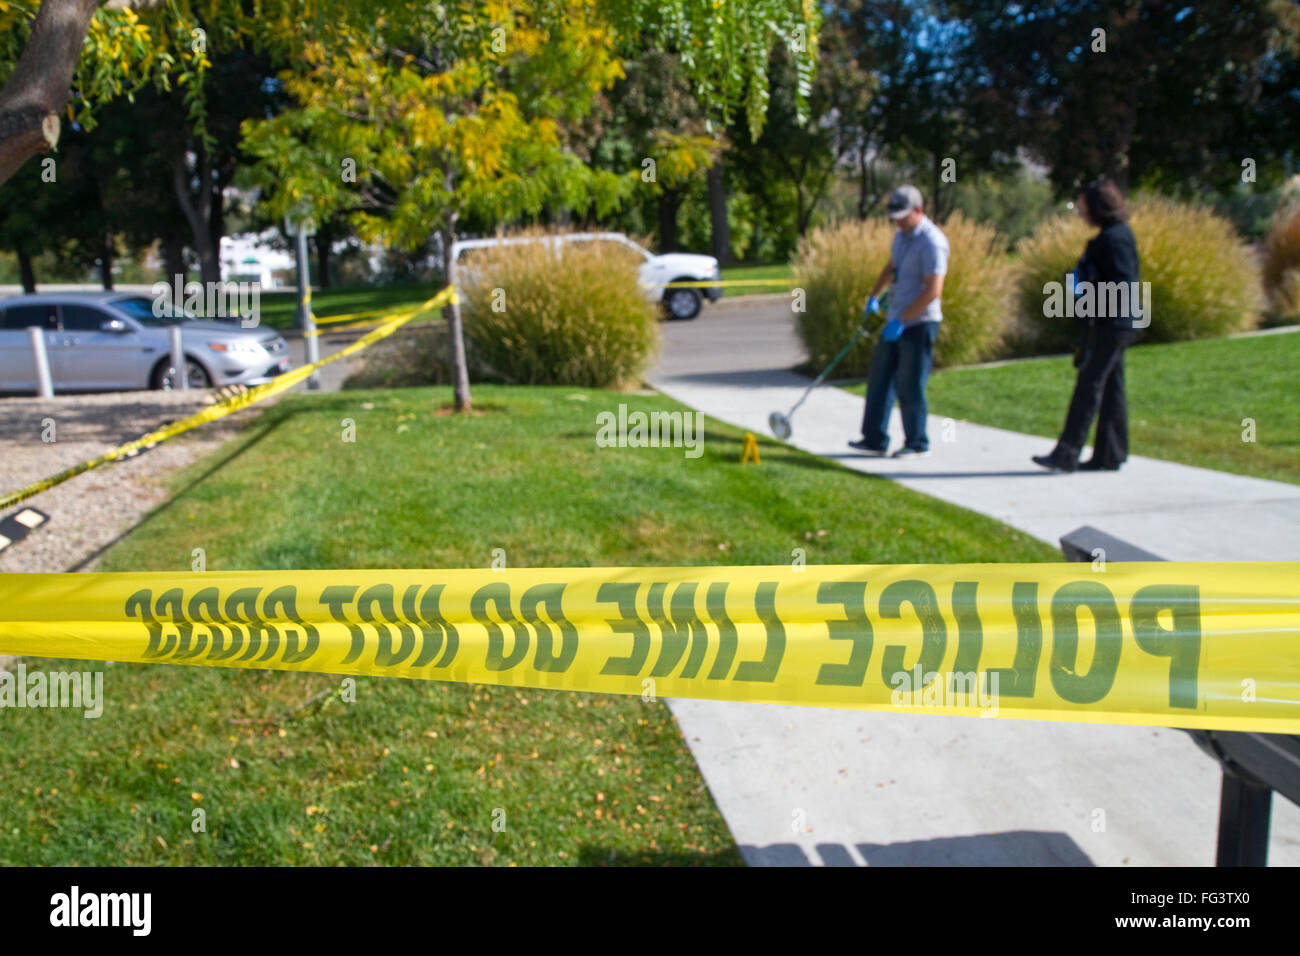 Police caution tape at the scene of a crime in Boise, Idaho, USA. - Stock Image